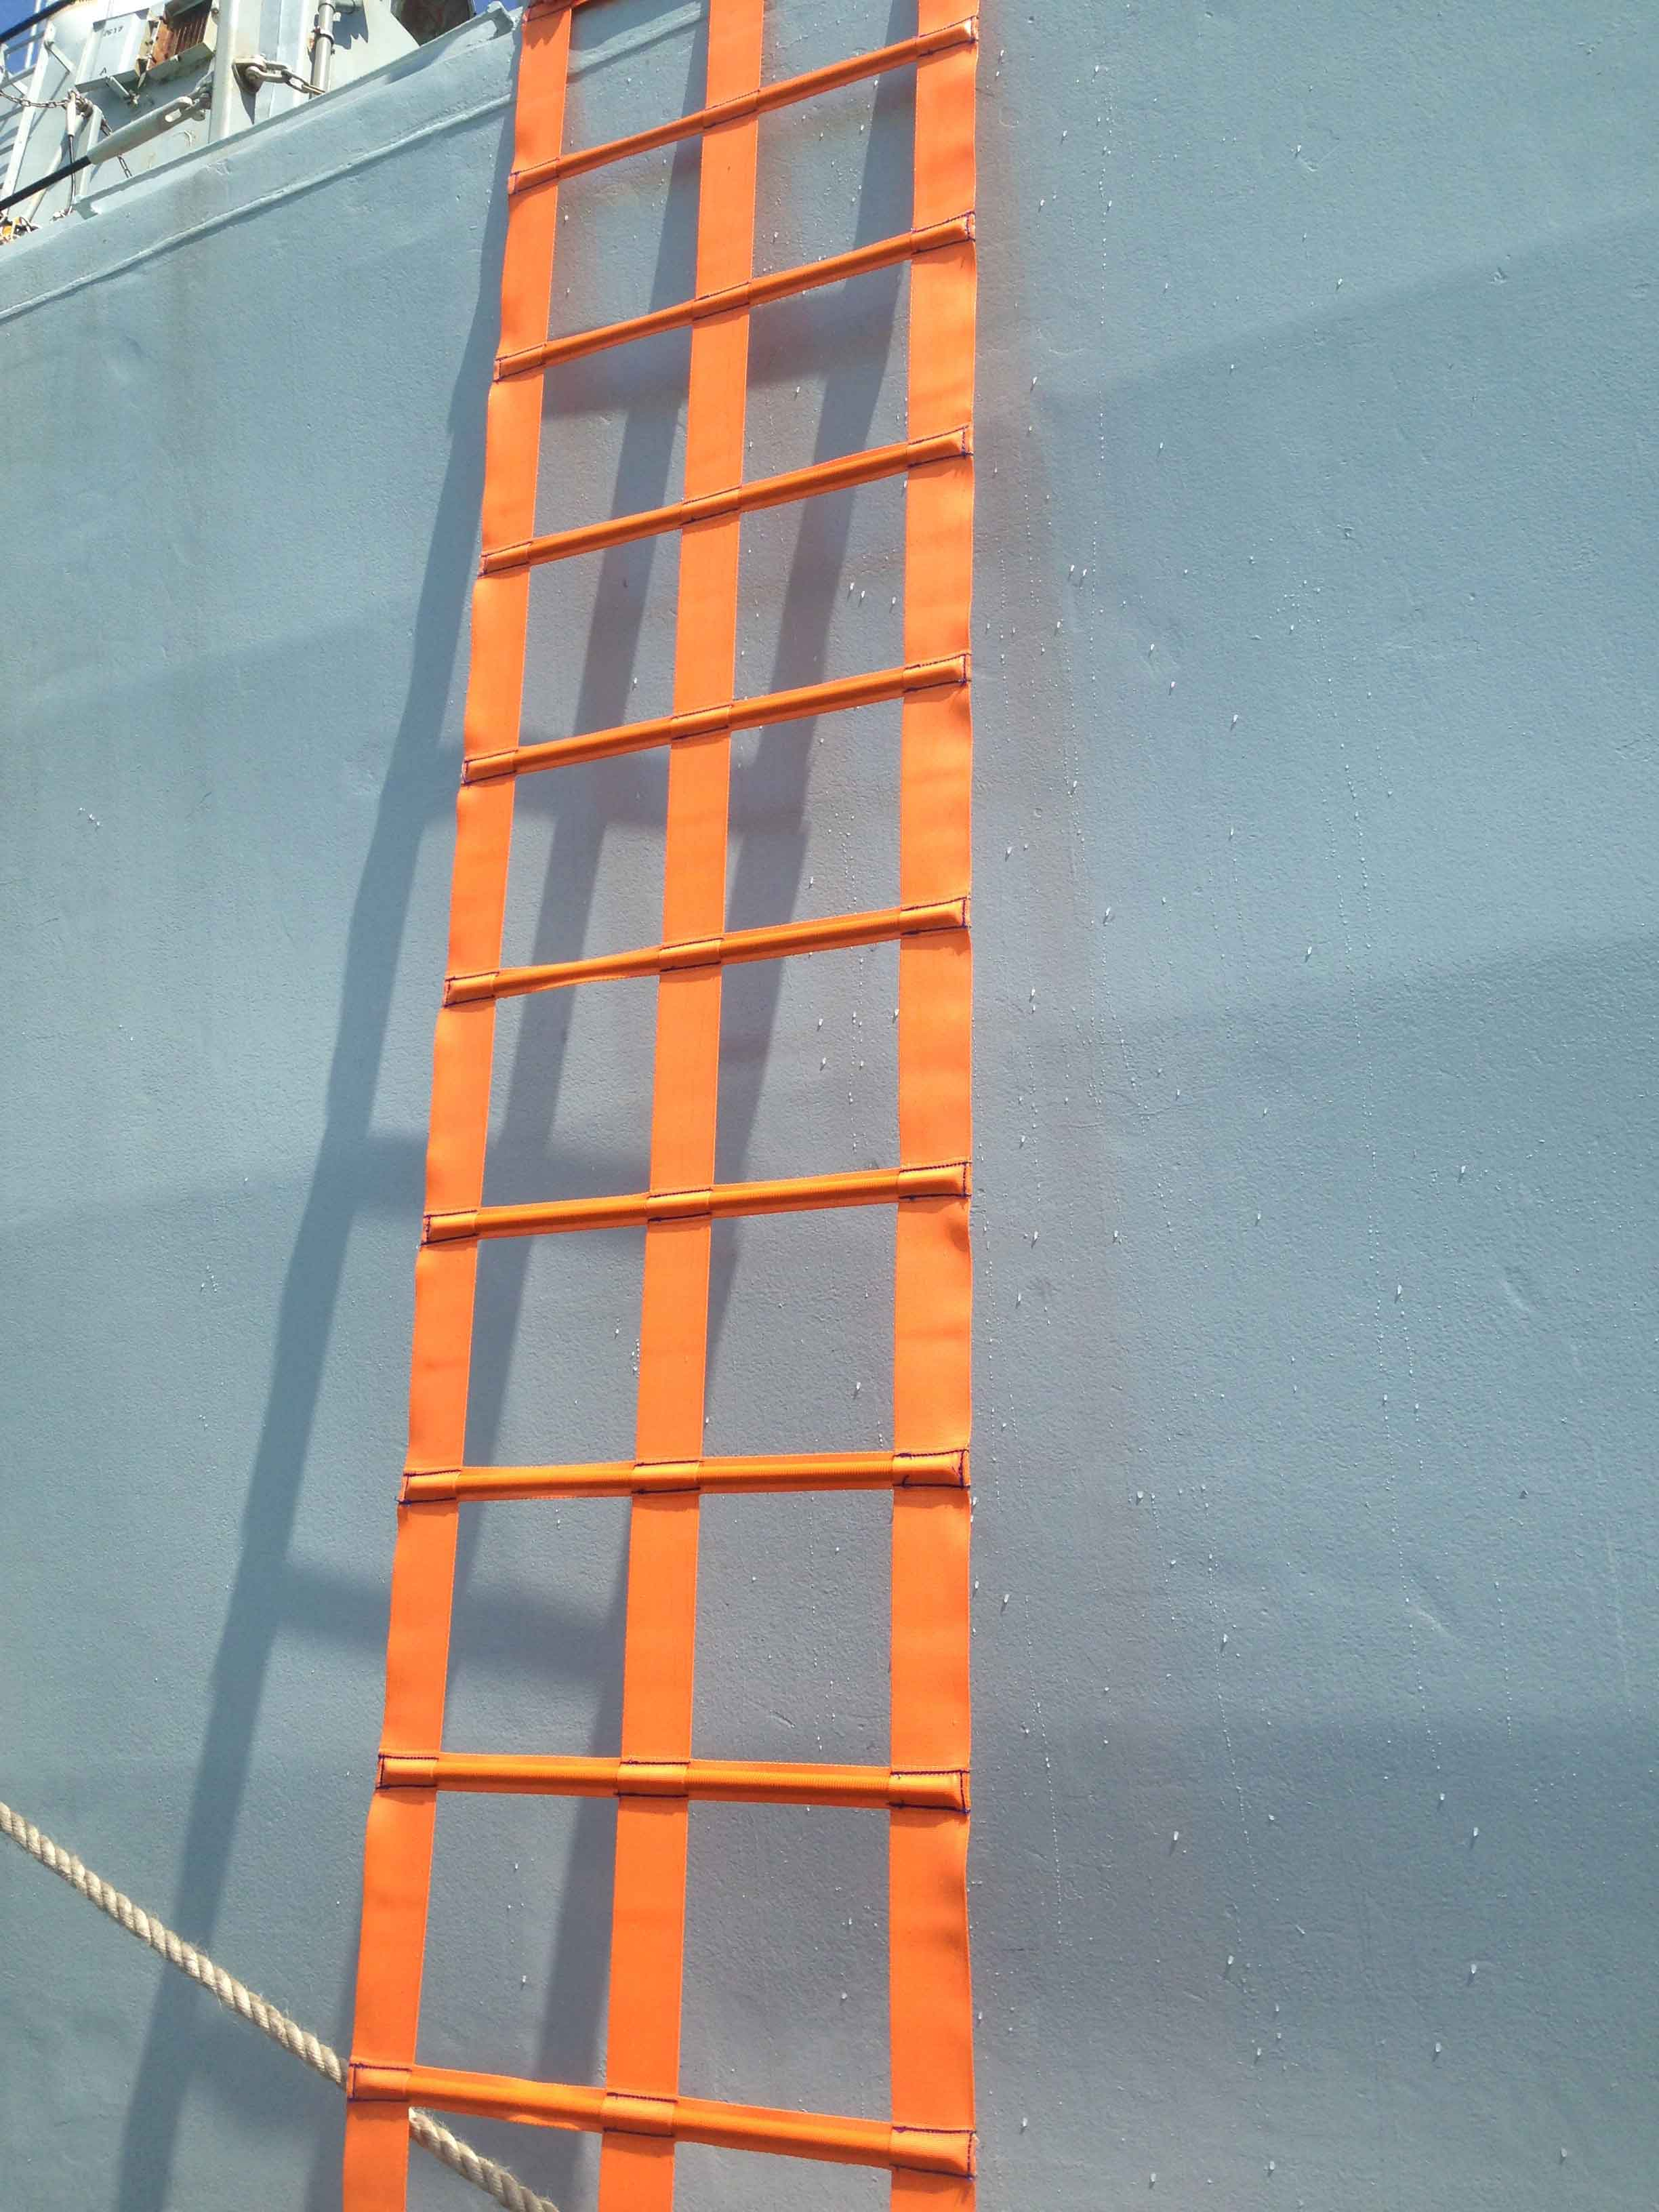 Northrock Safety Fibrelight Emergency Ladder SOLAS Approved Ladder Singapore